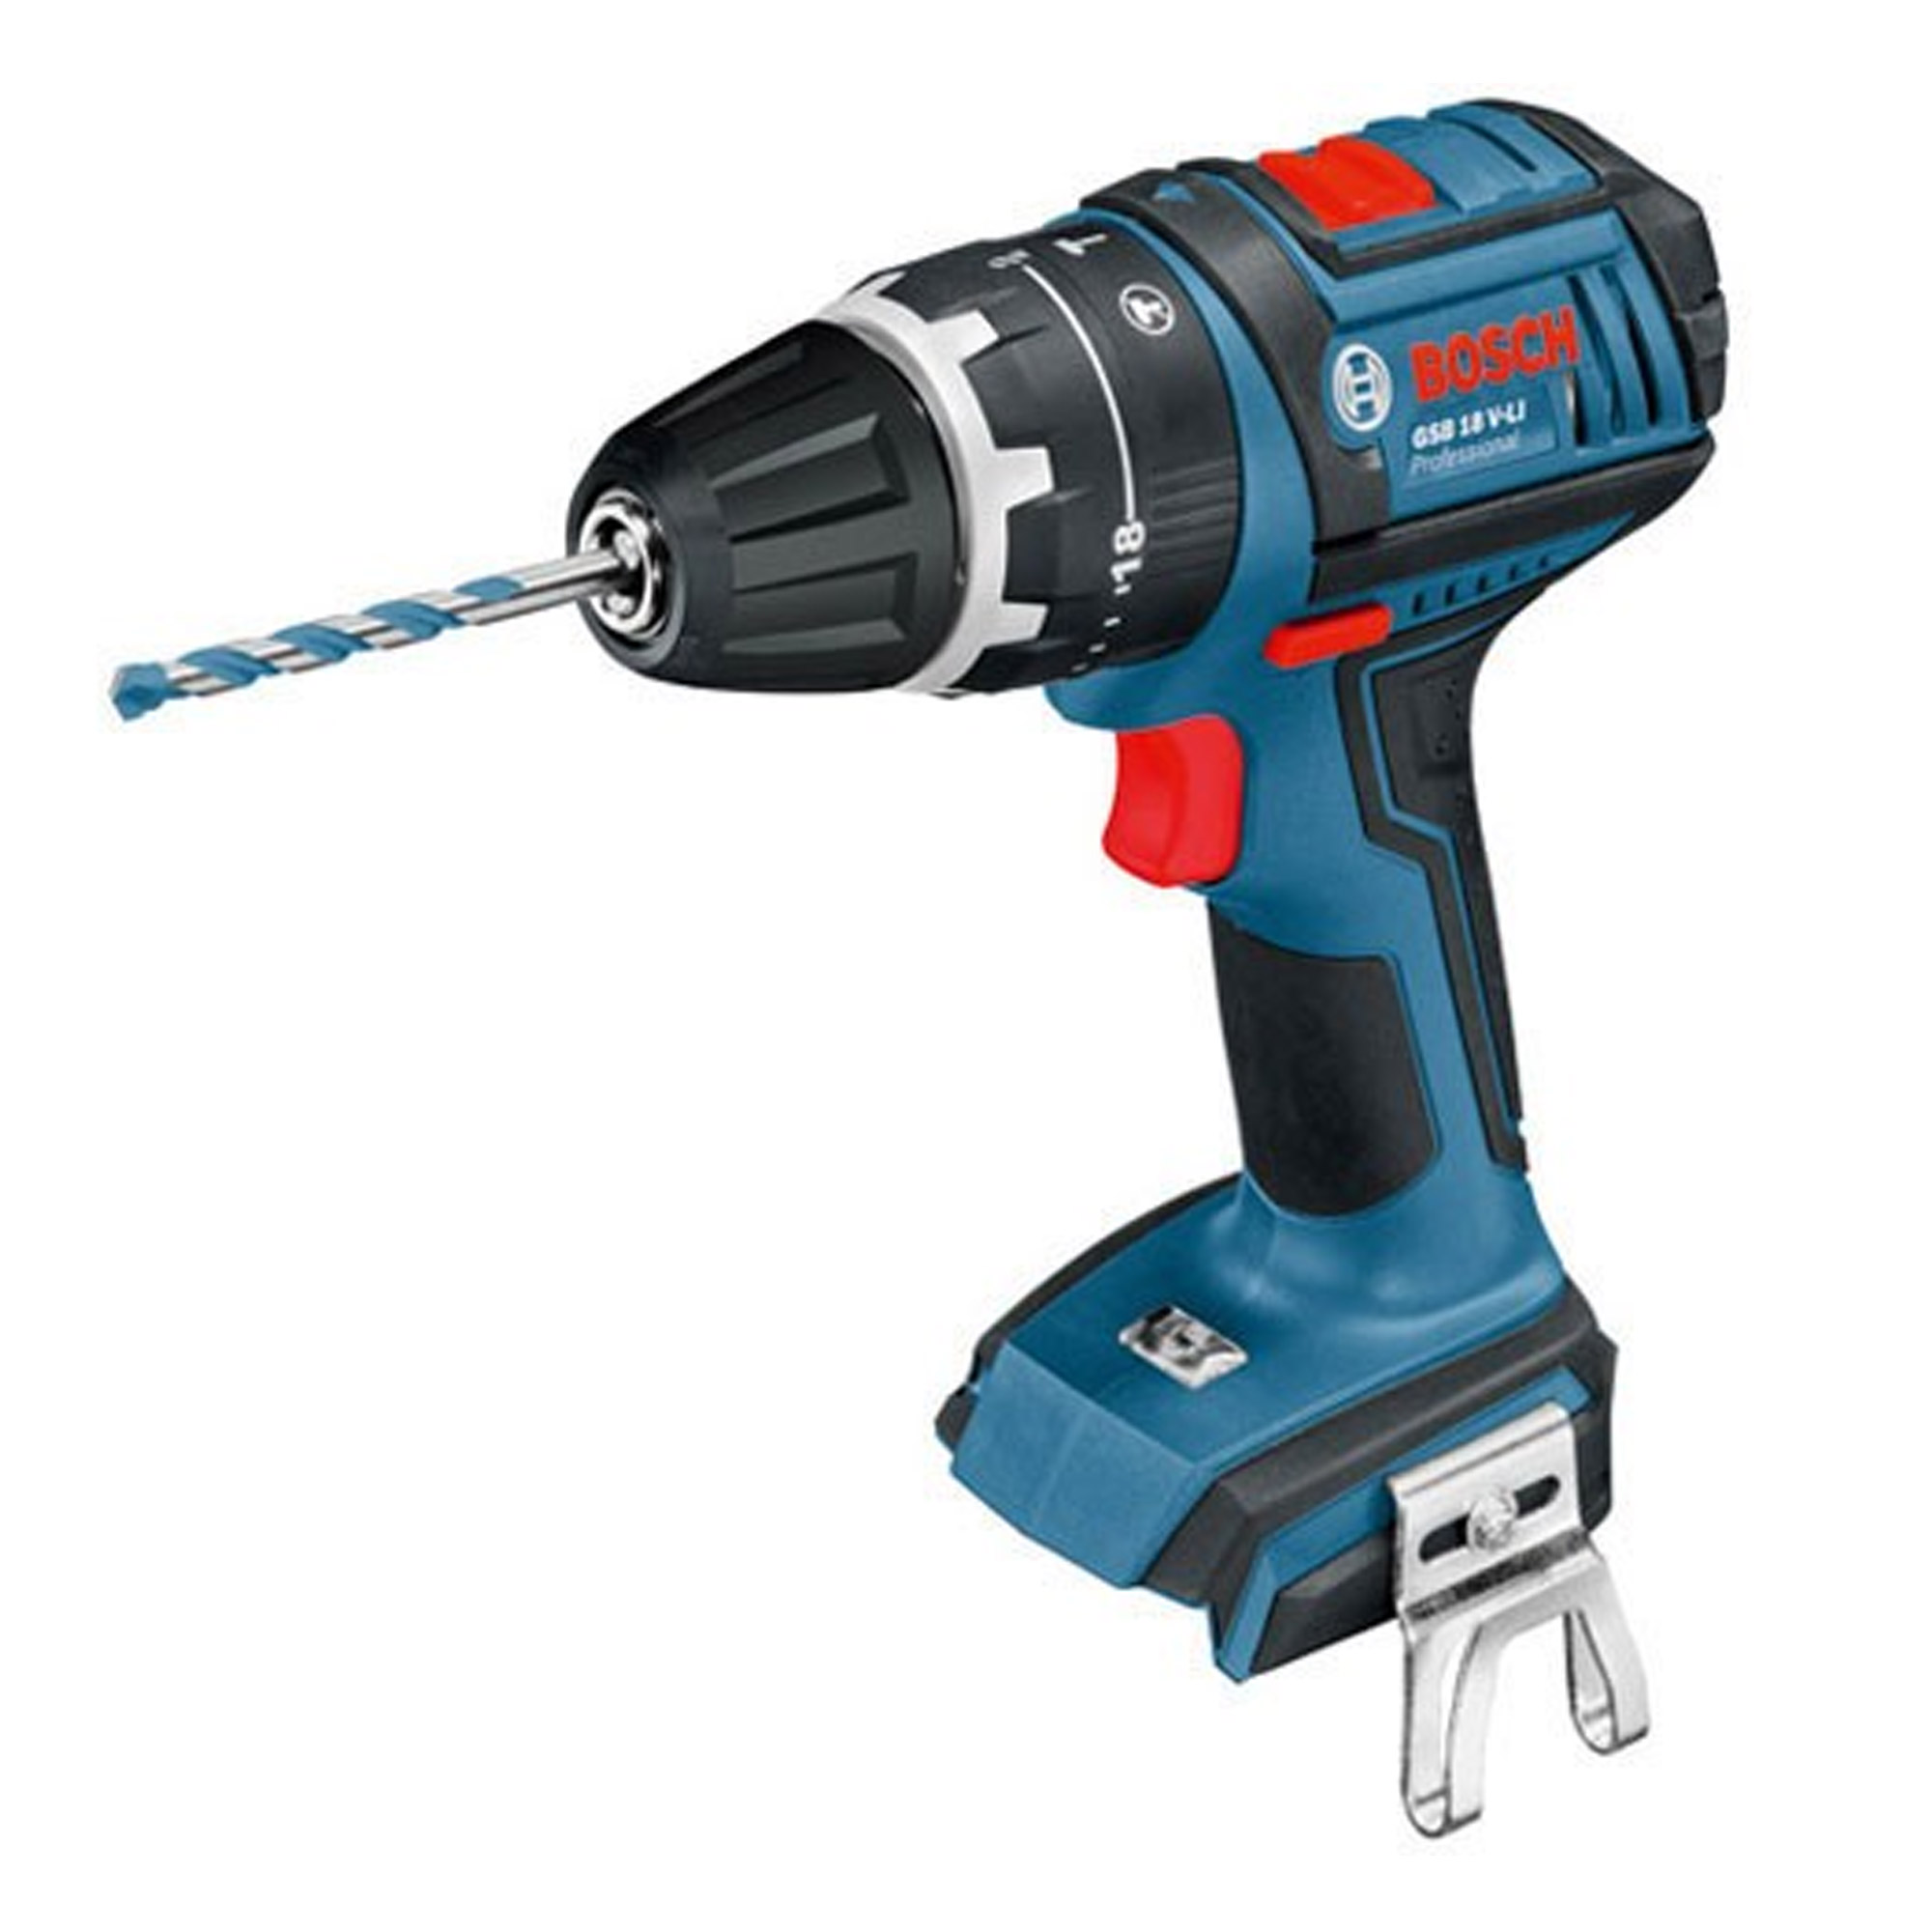 bosch gsb 18 v ecn bosch 18v li ion brushless hammer drill driver body. Black Bedroom Furniture Sets. Home Design Ideas